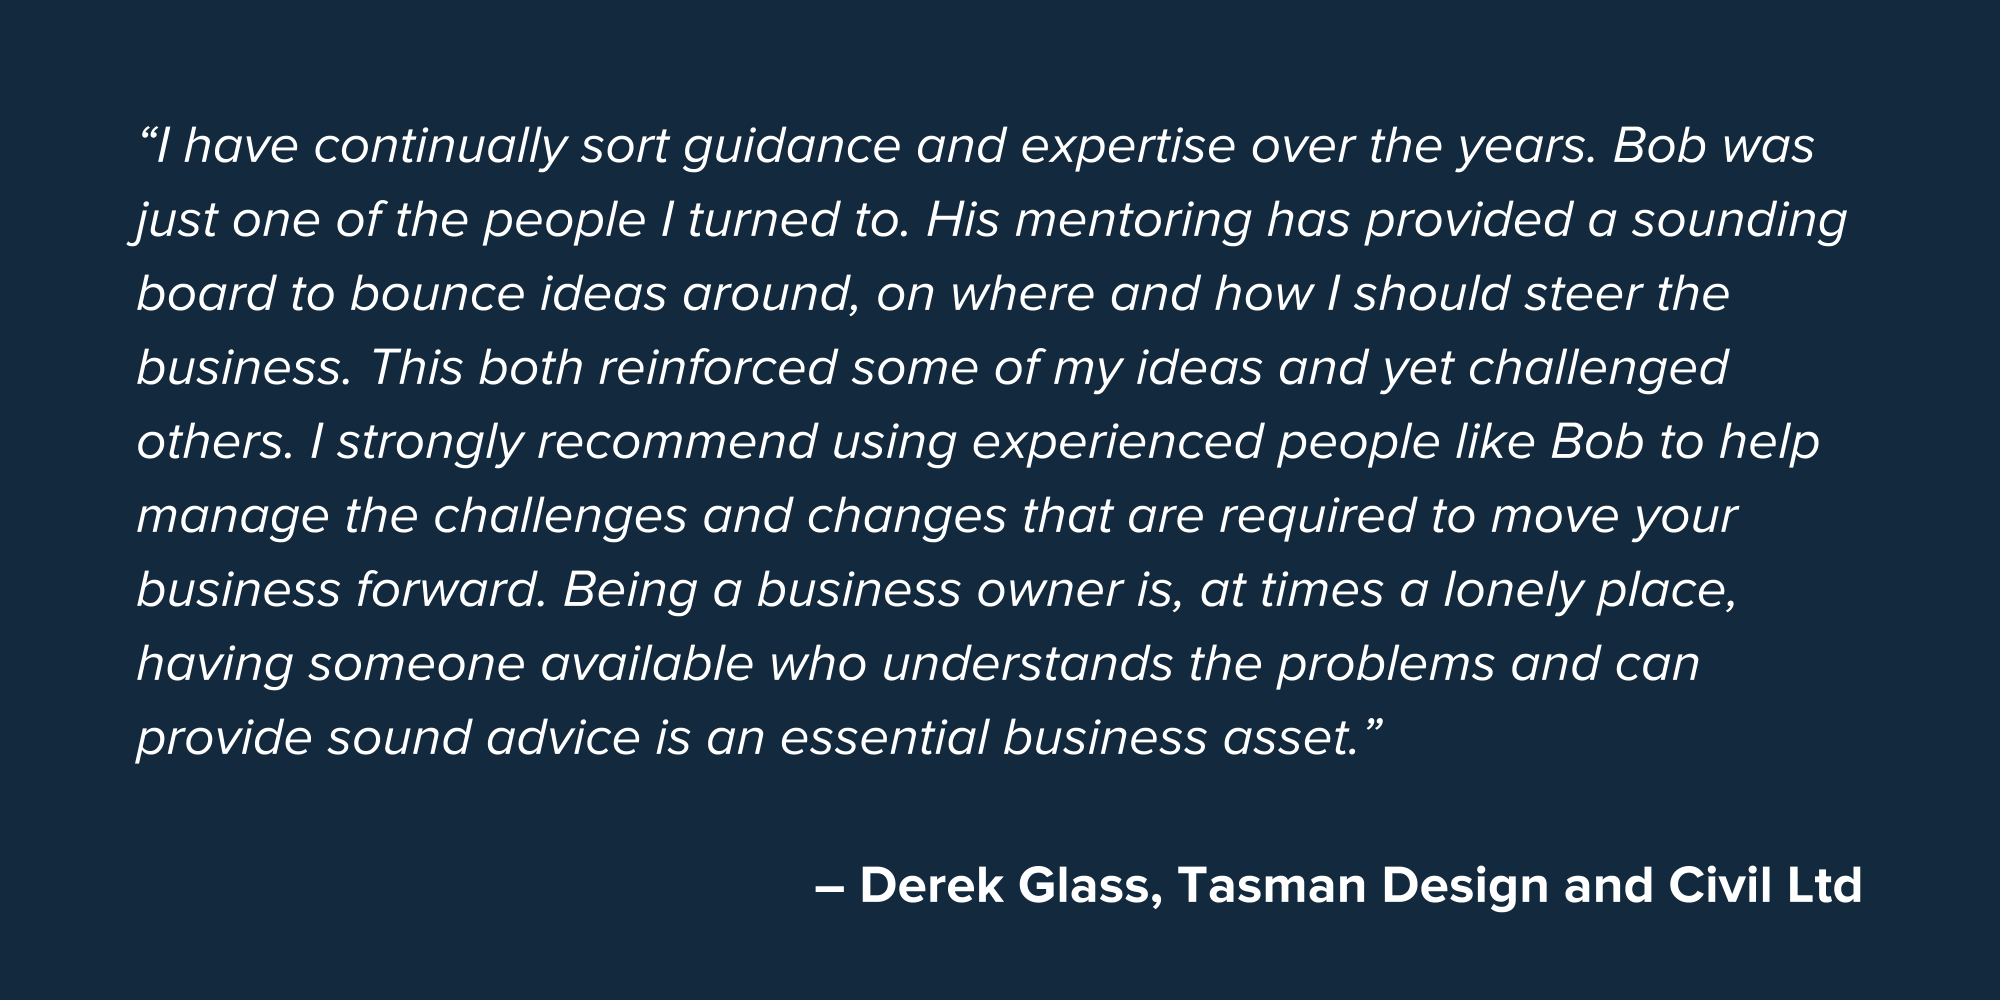 Derek Glass SME Business Testimonial Quote